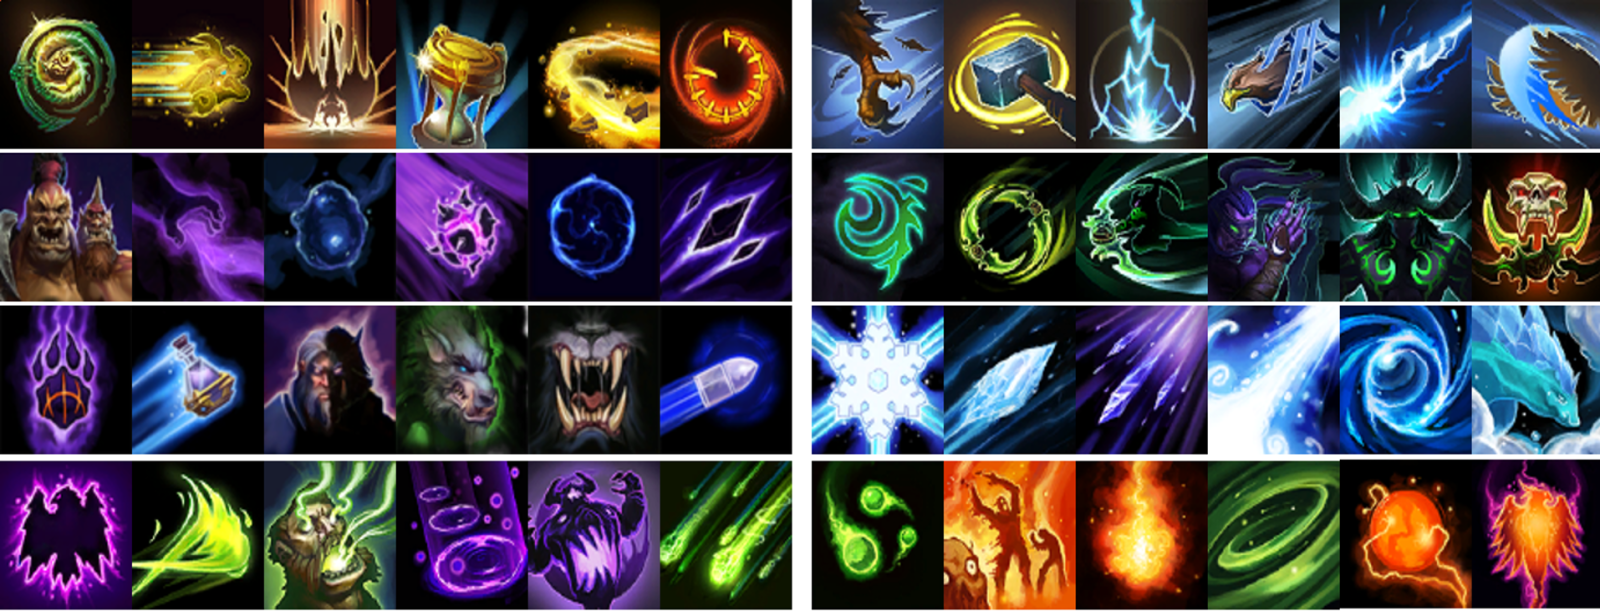 Pack de Iconos - Heroes of the Storm Zxtmdx